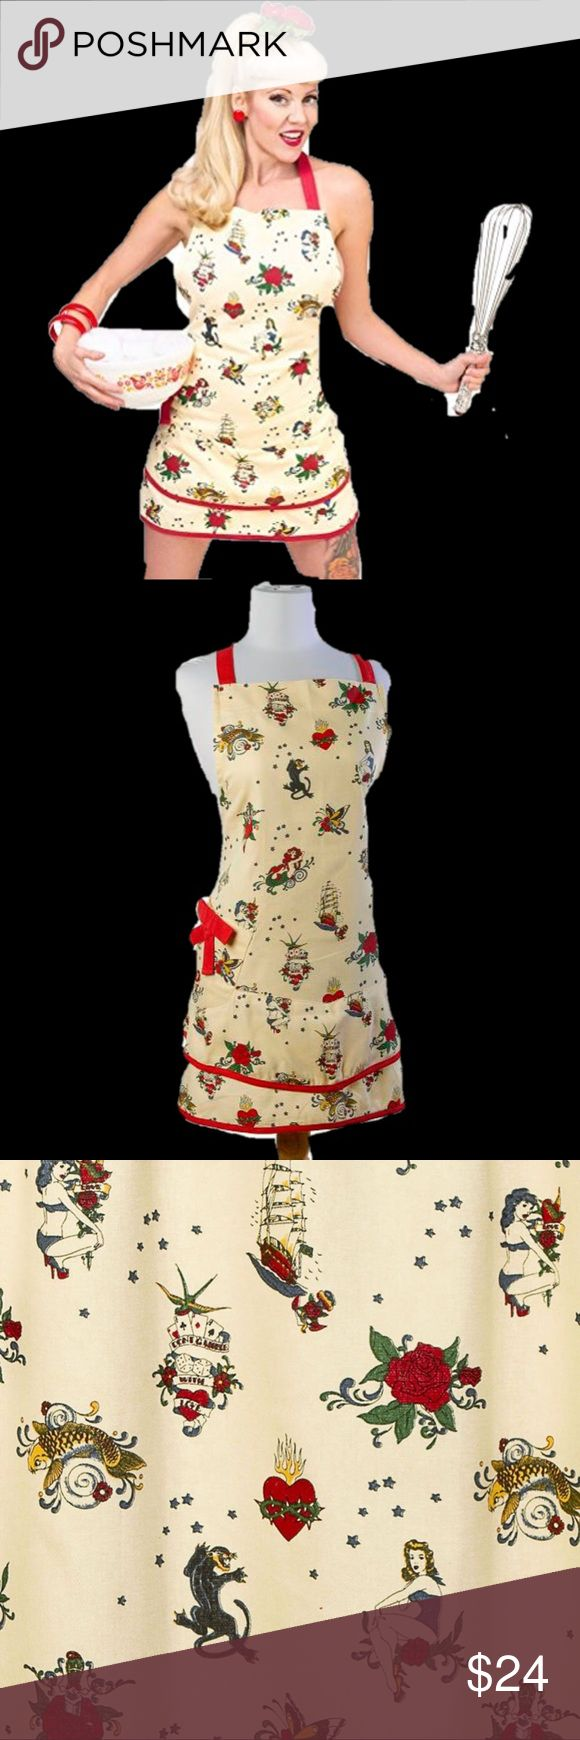 🍒NWT- SEXY Apron with flash tattoo images 🧜🏿‍♀️ 🧜🏿‍♀️ NWT- SEXY Crème colored apron with flash tattoo images of mermaids, panthers, pinups and more. 100% brand new and high quality apron. Can well protect your clothes, arms and head from getting dirty. Come with pocket for convenient to store some gadgets such as keys, cellphone, MP3, etc. . Suitable for kitchen, cafe, working shop, etc. Simple and practical design, comfortable to wear, and easy to clean. * 100% Cotton * Includes 1…